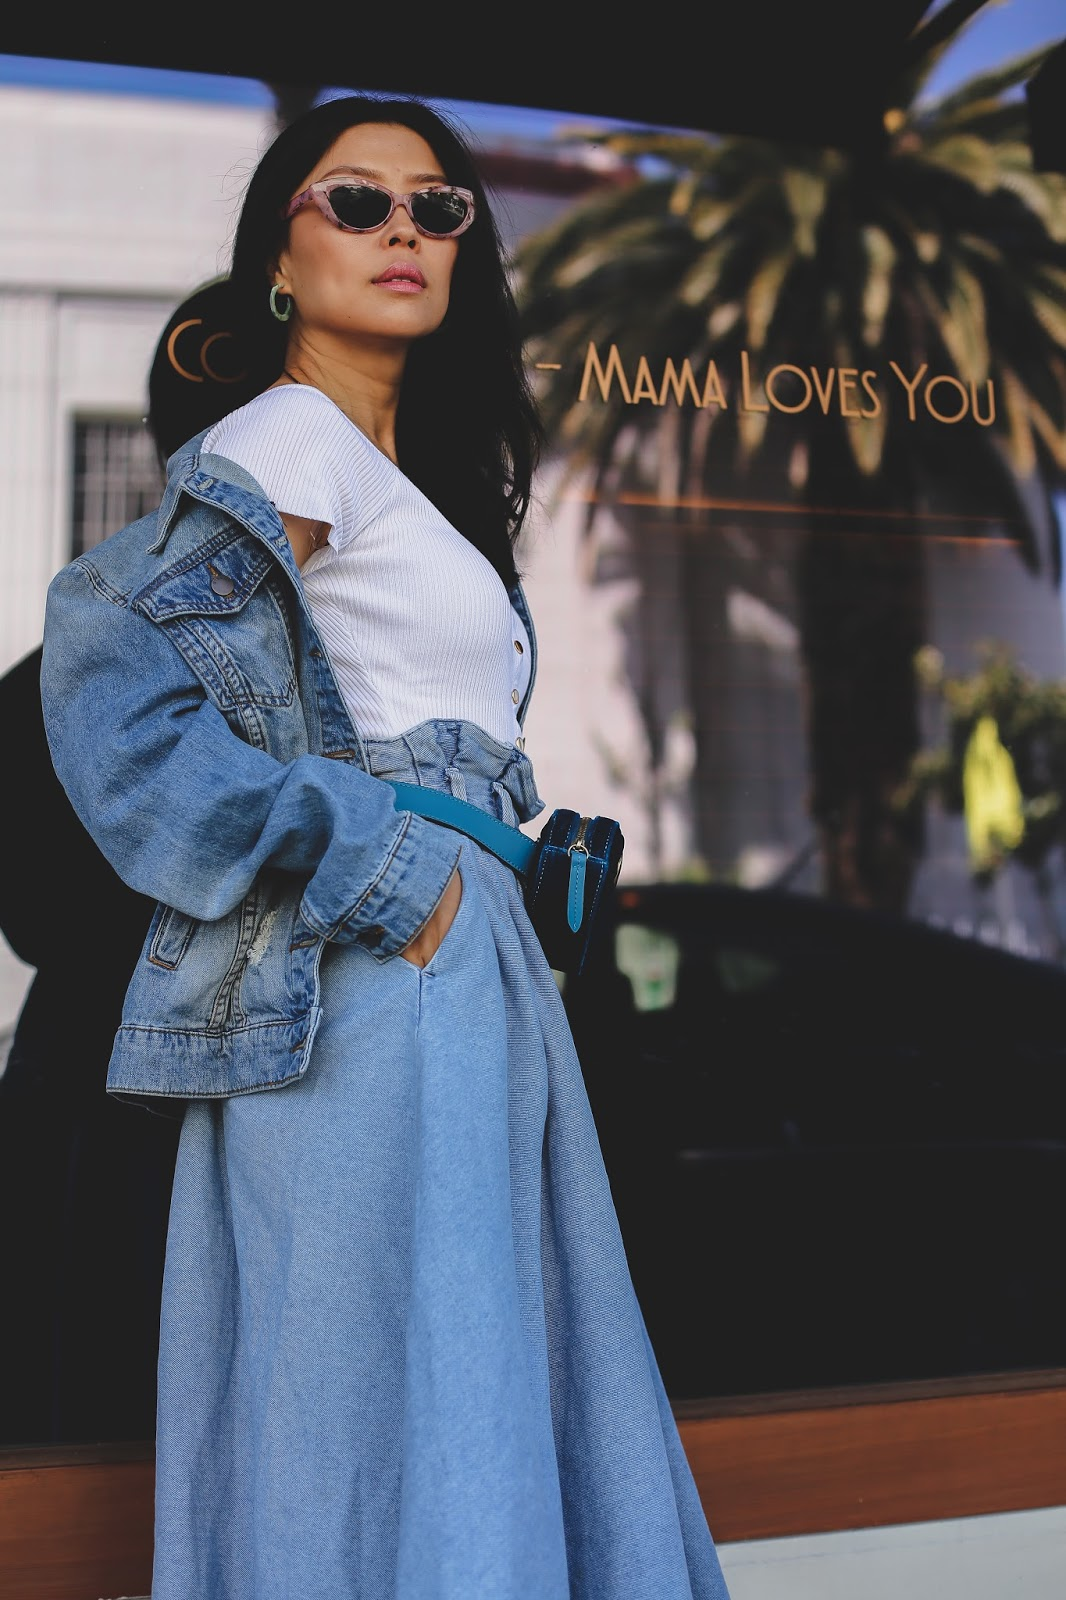 How to style a denim jacket chic fashion outfit